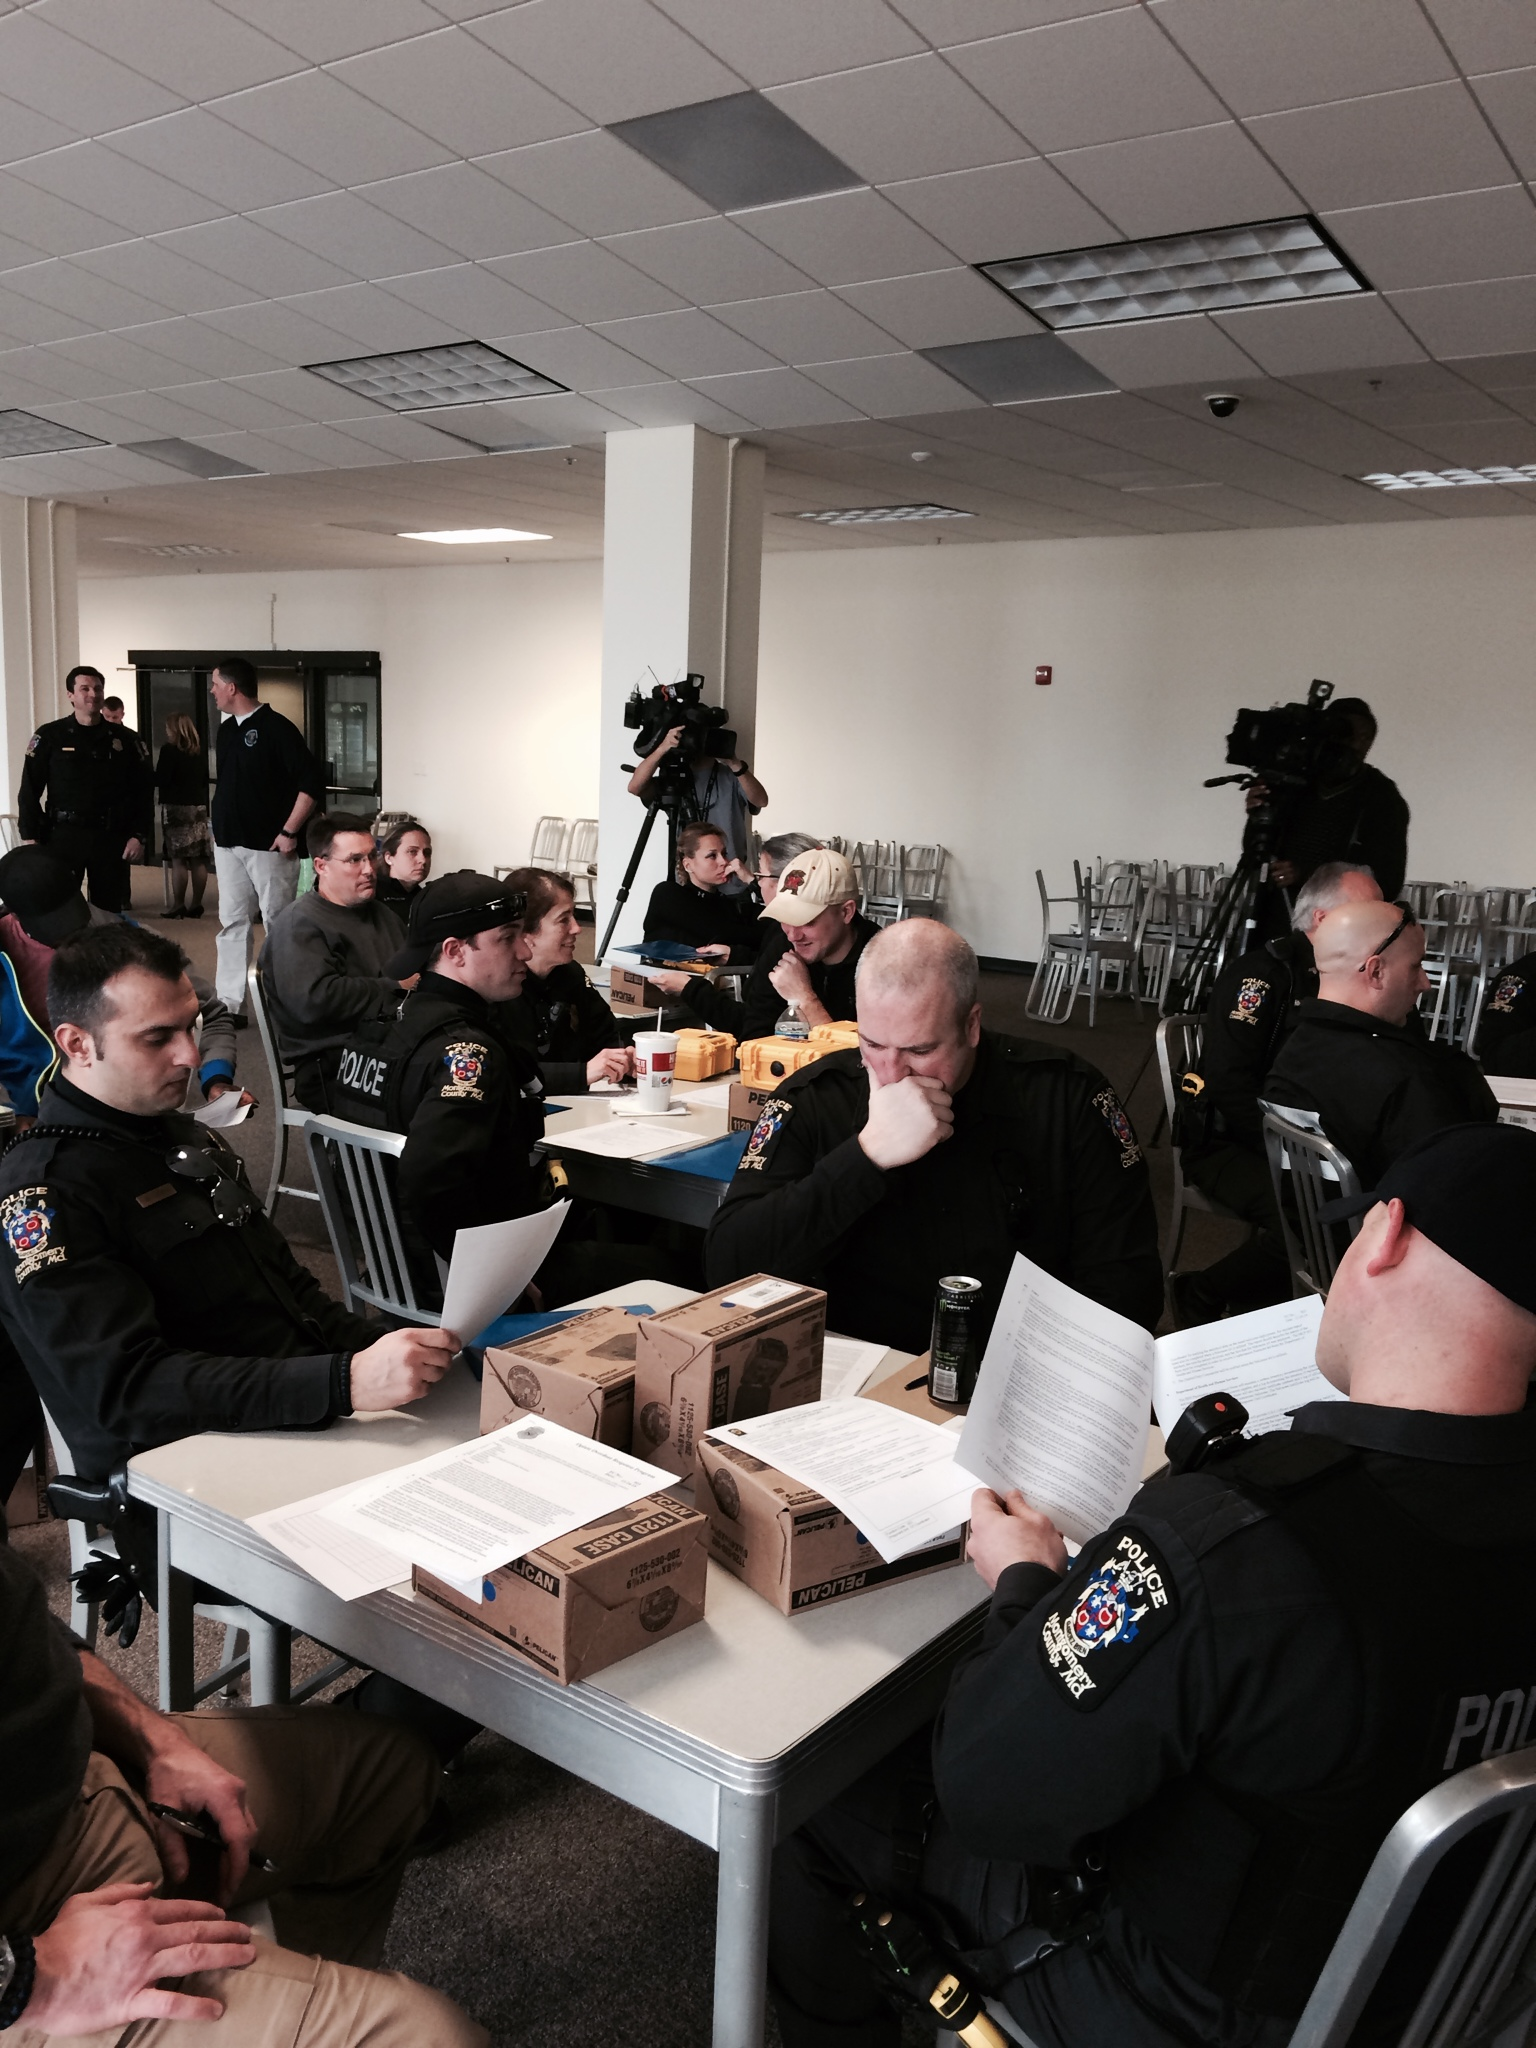 Mont. Co. officers trained to administer Narcan